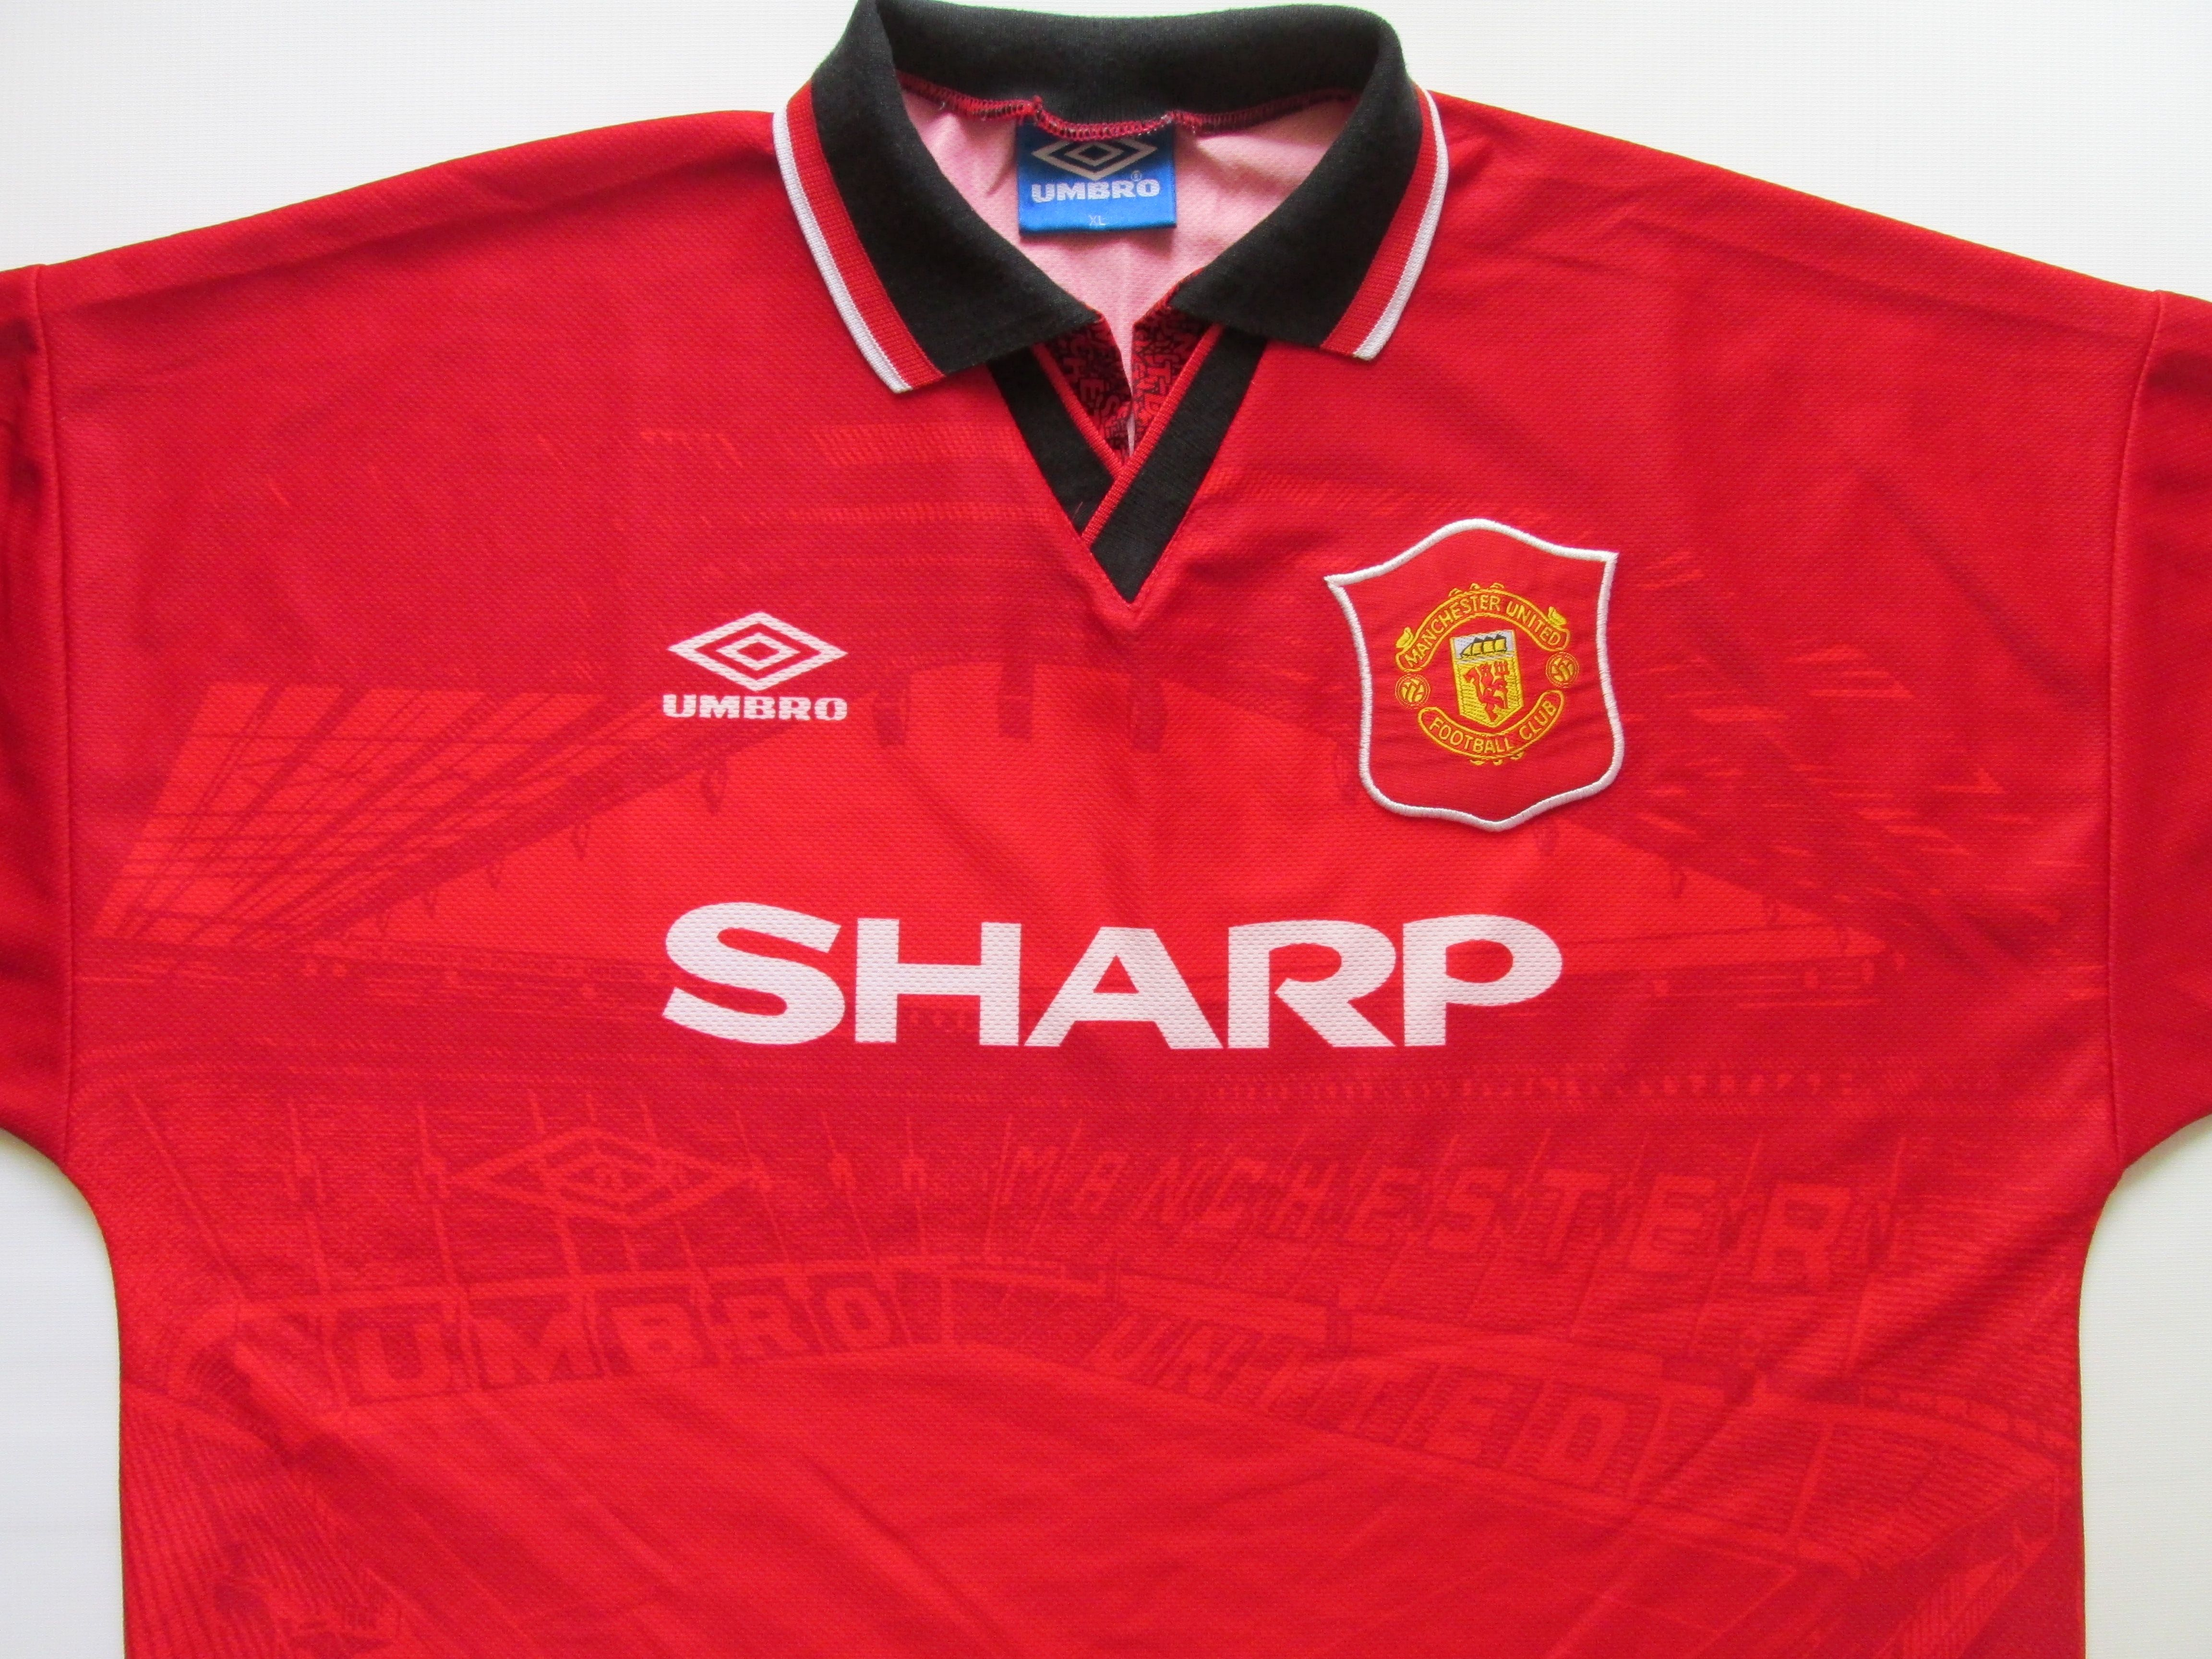 97652525e87 Manchester United 1994 1995 home football shirt by Umbro OldTrafford Sharp  90s retro vintage jersey soccer PremierLeague MUFC  ManchesterUnited   ManUtd ...